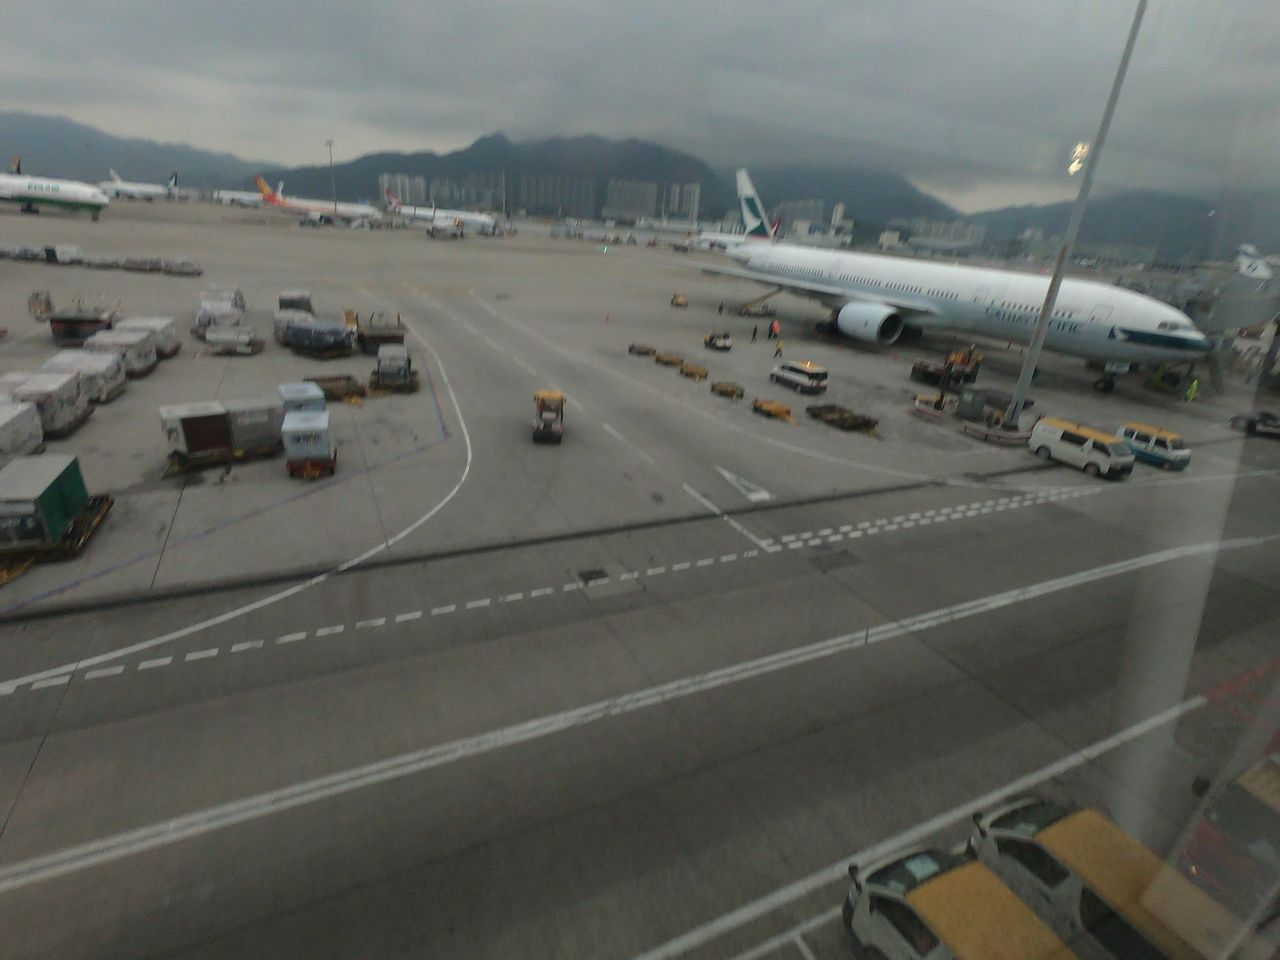 Review of Cathay Pacific flight from Cebu to Hong Kong in Economy